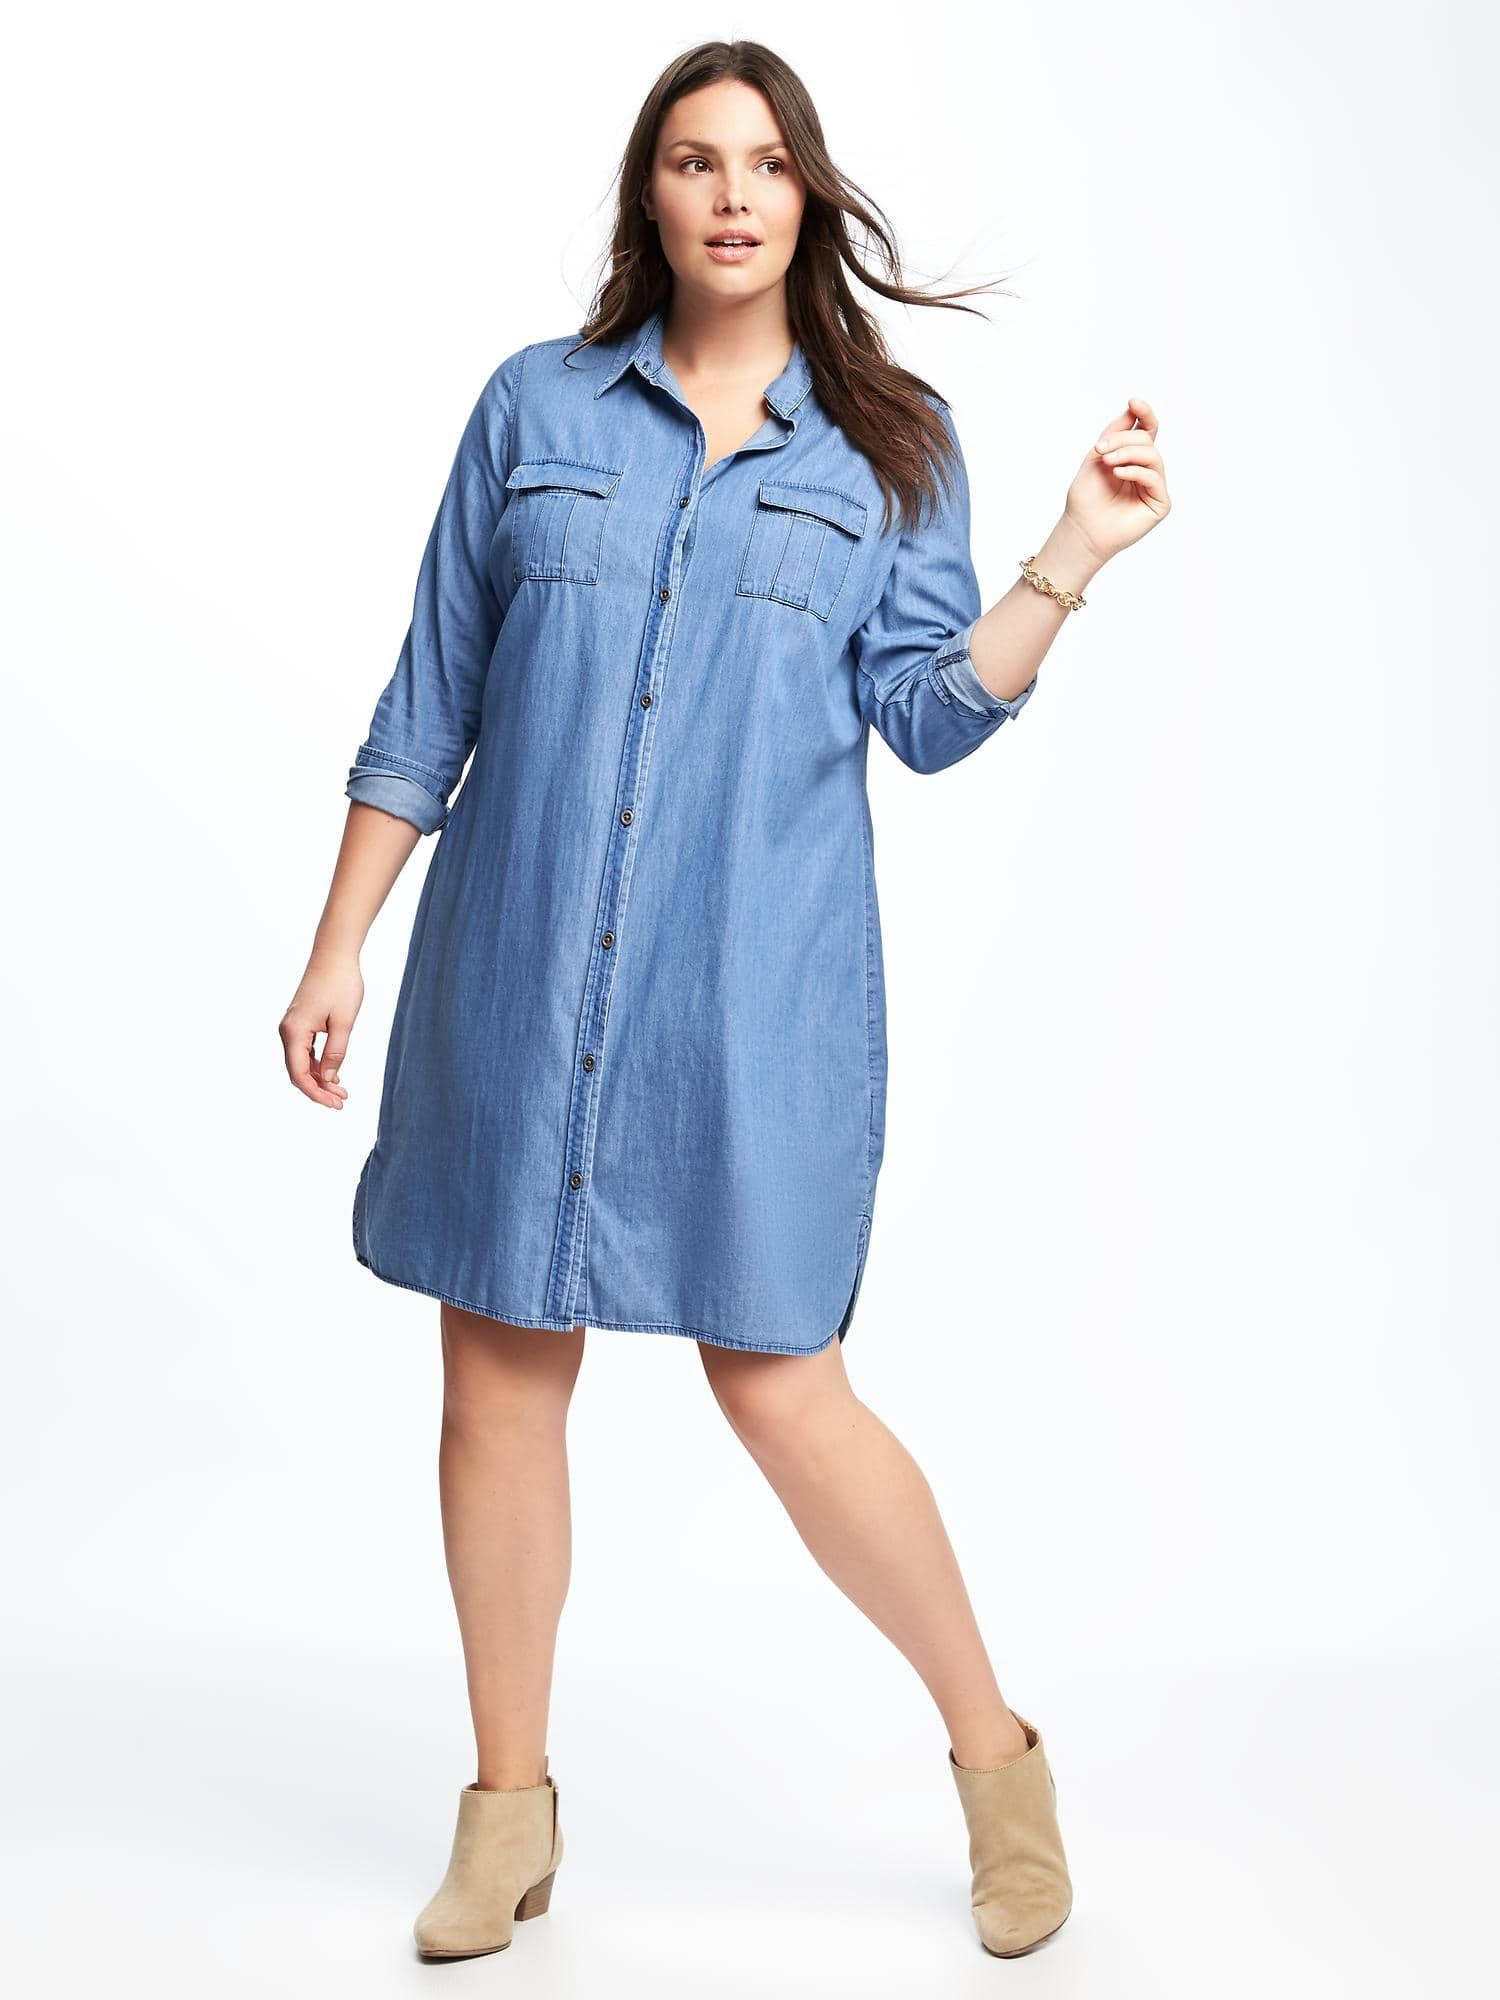 Plus-Size Chambray Shirt Dress from Old Navy | Style in 2019 ...